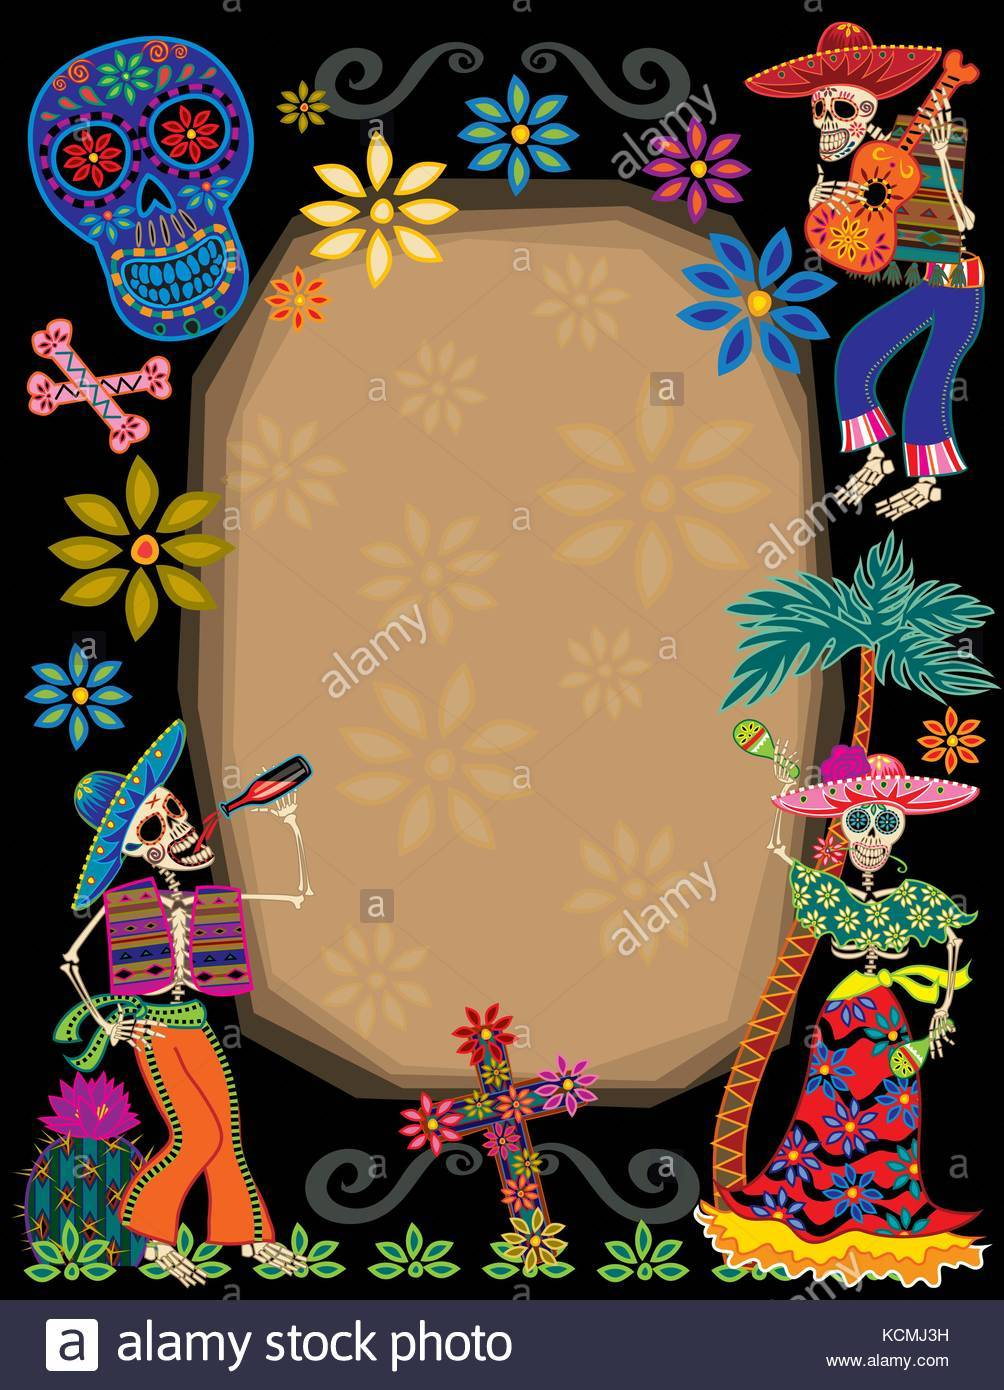 Day of the dead border clipart svg transparent download Day of the dead border clipart 8 » Clipart Portal svg transparent download